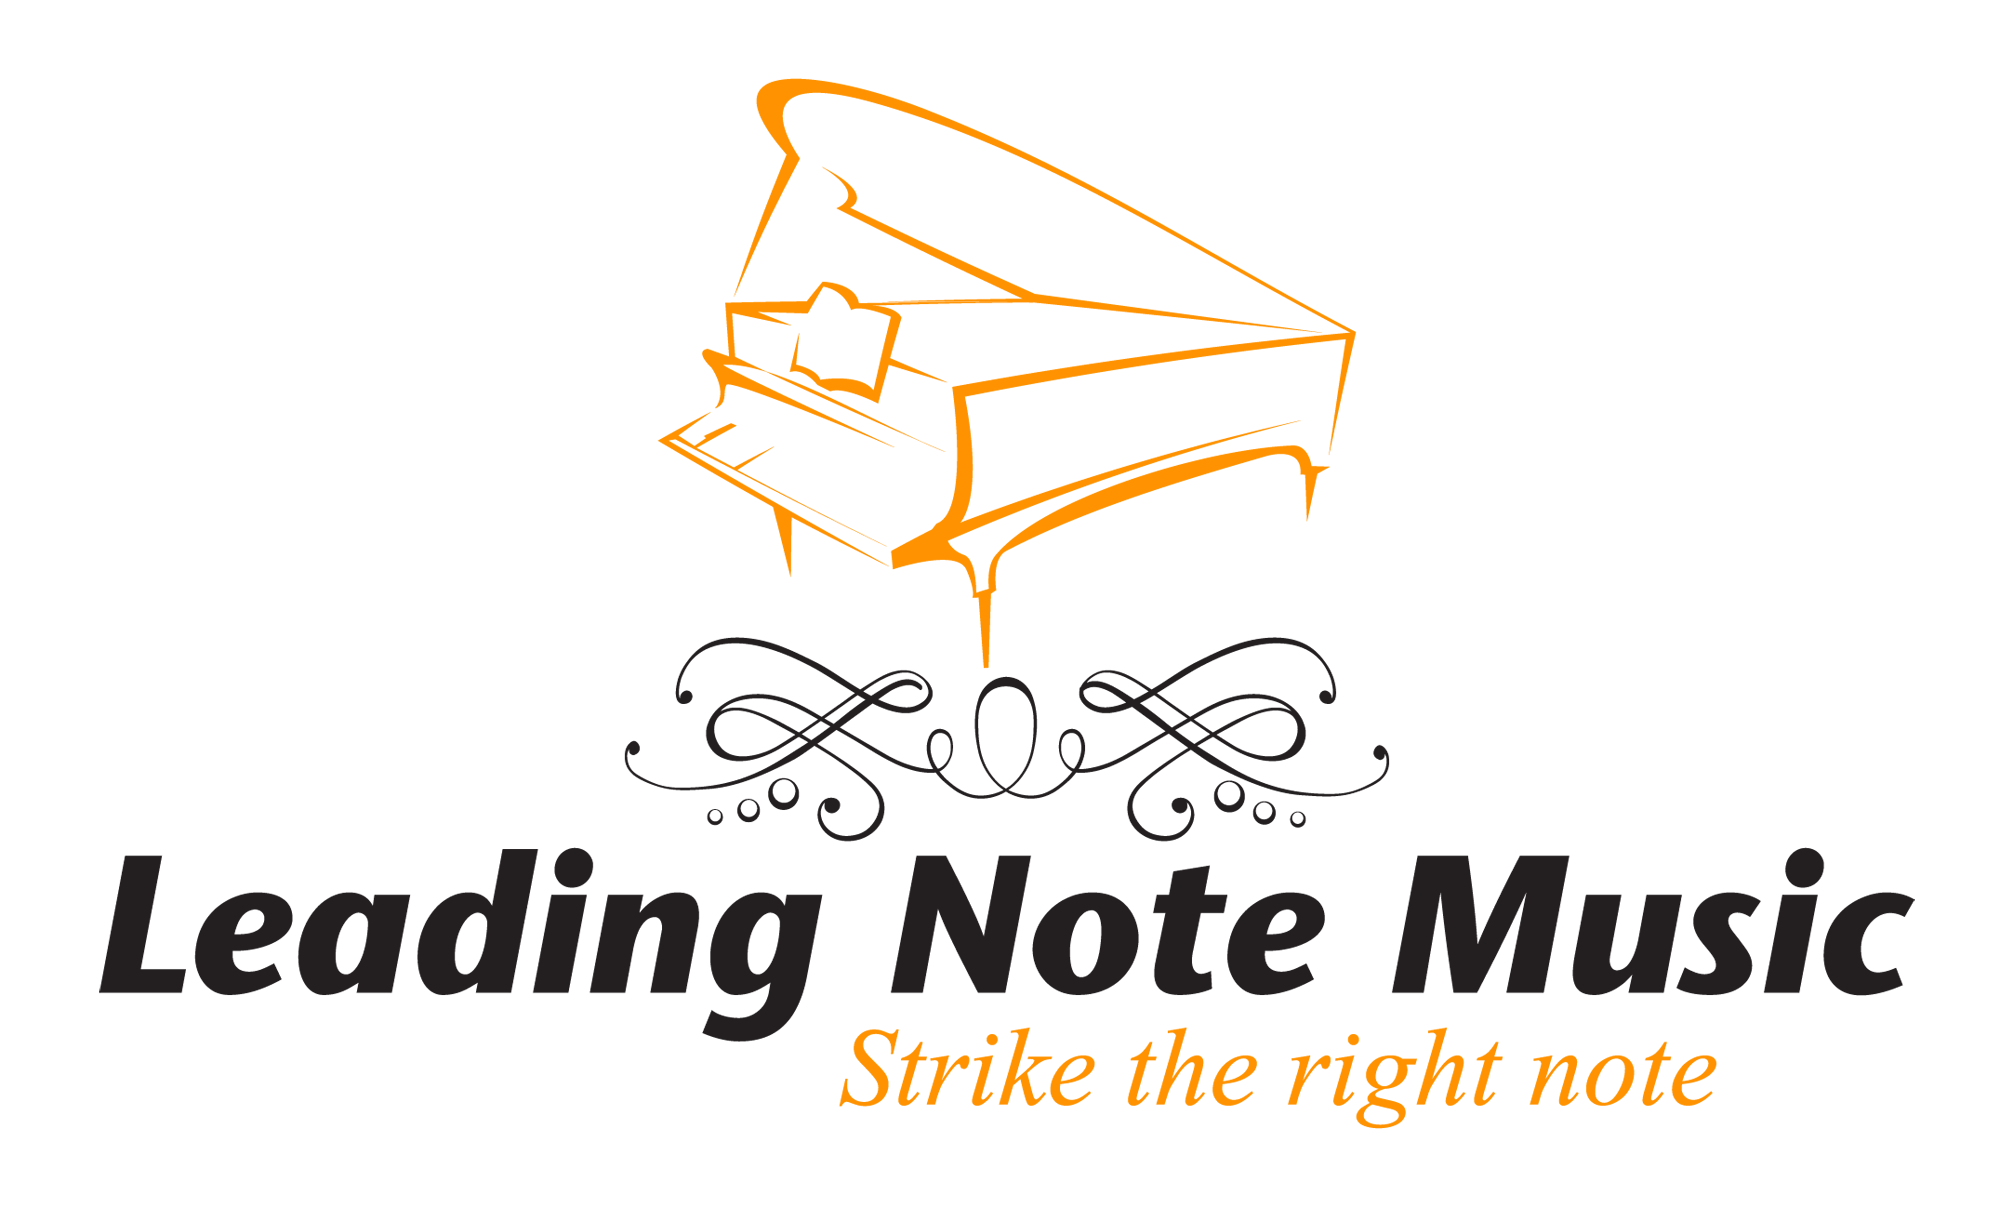 Leading_Note_Music (2).png